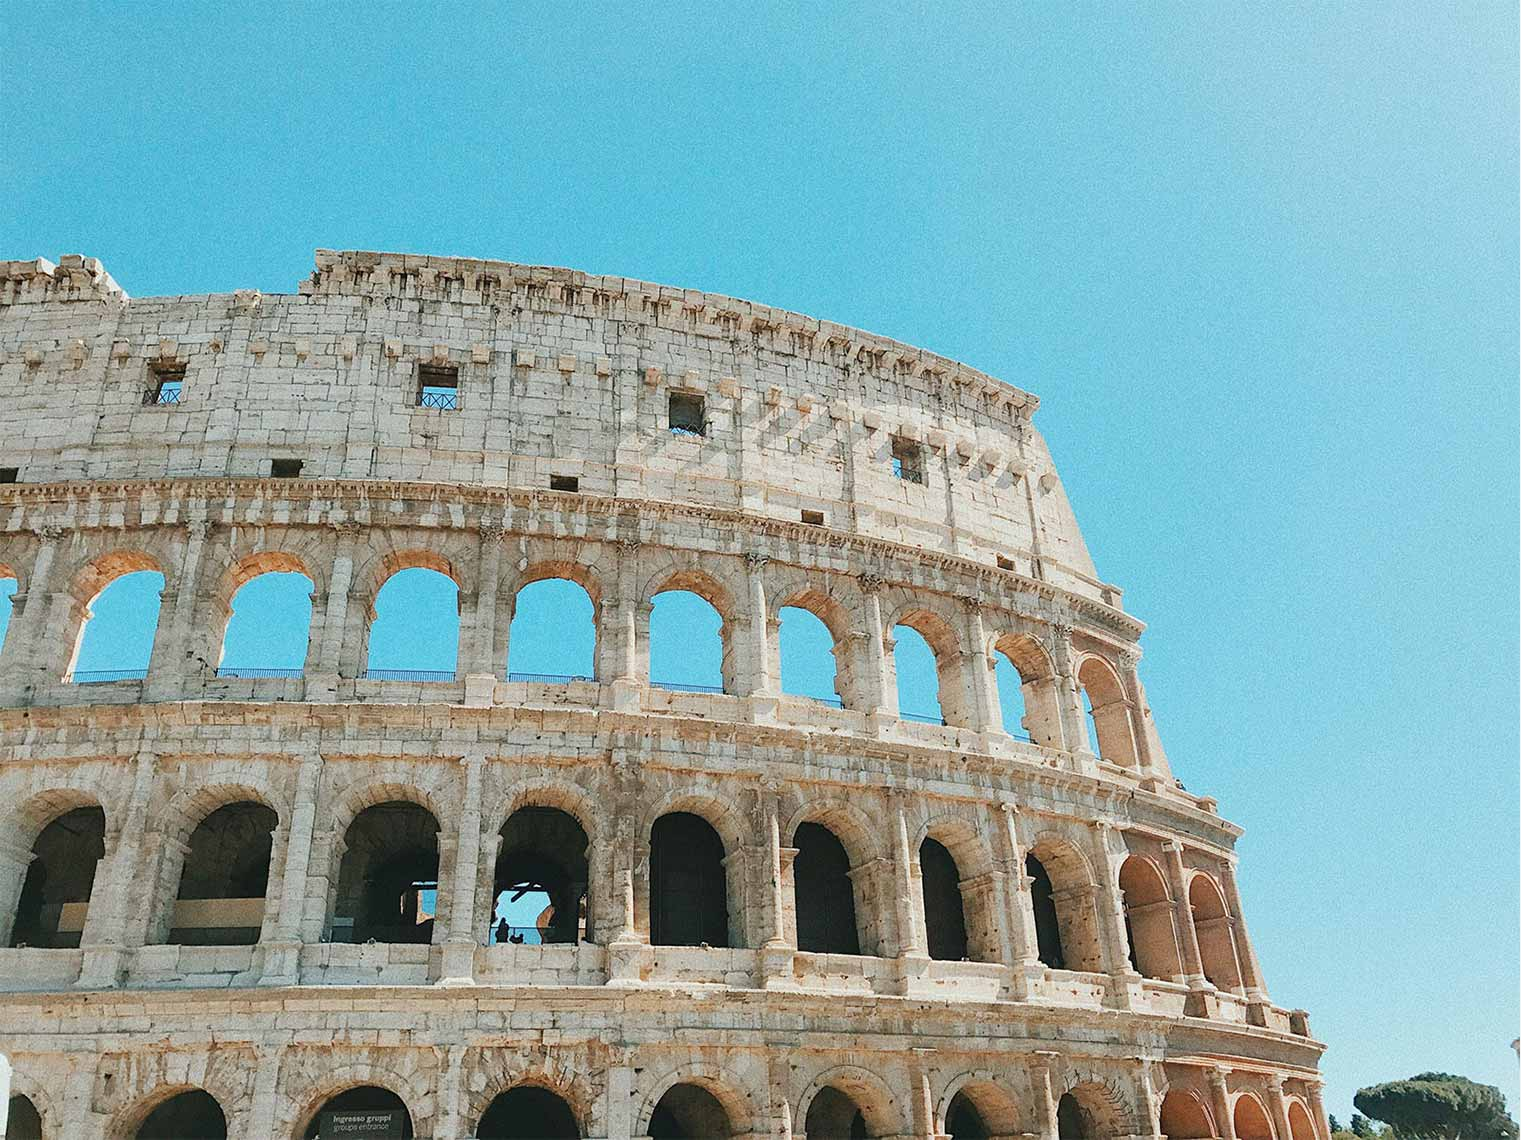 The Colosseum with skip the line access tour.